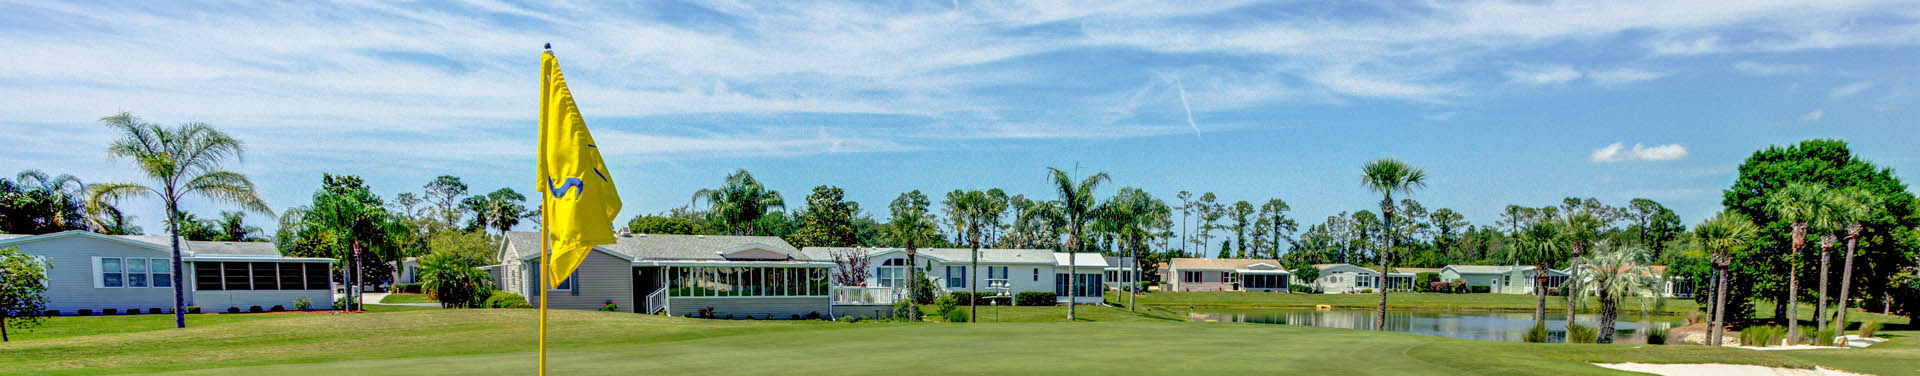 Photo of the lush green golf field surrounded by the community of mobile homes, with nice green trees